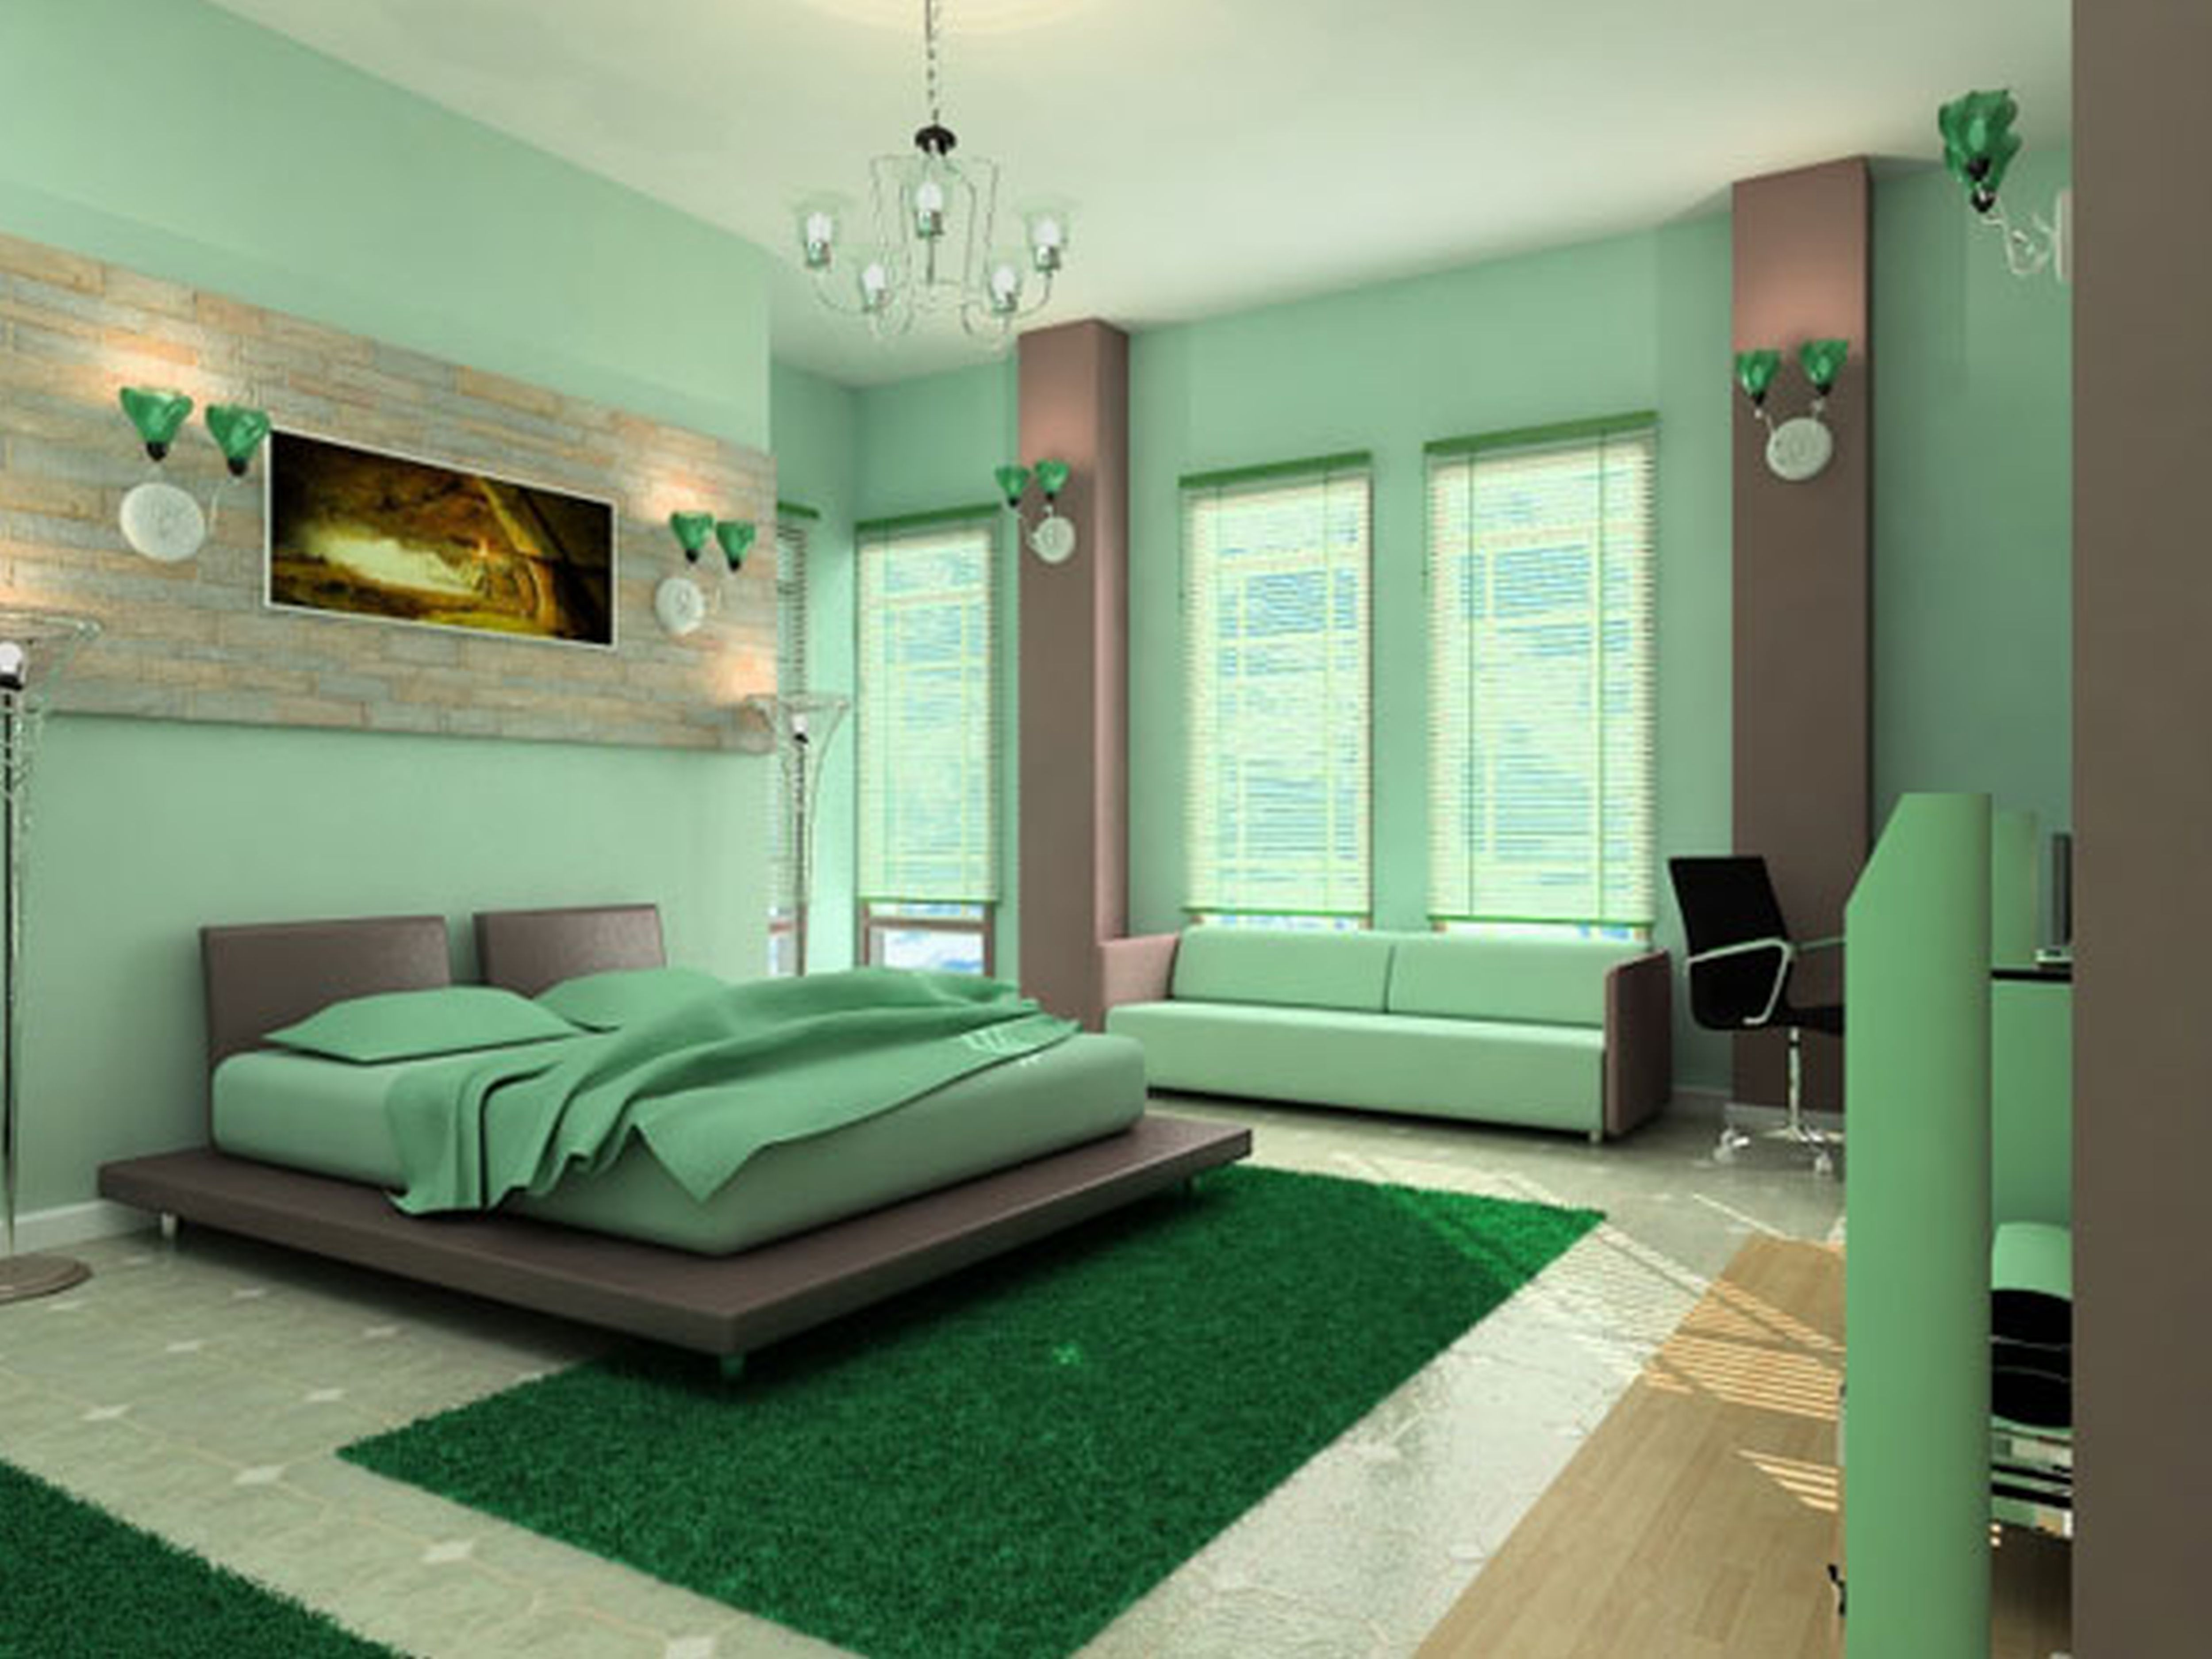 Wall Painting Designs For Bedrooms Magnificent Fairdesignideasofcuteroompaintingwithgreengreywallpaint 2018